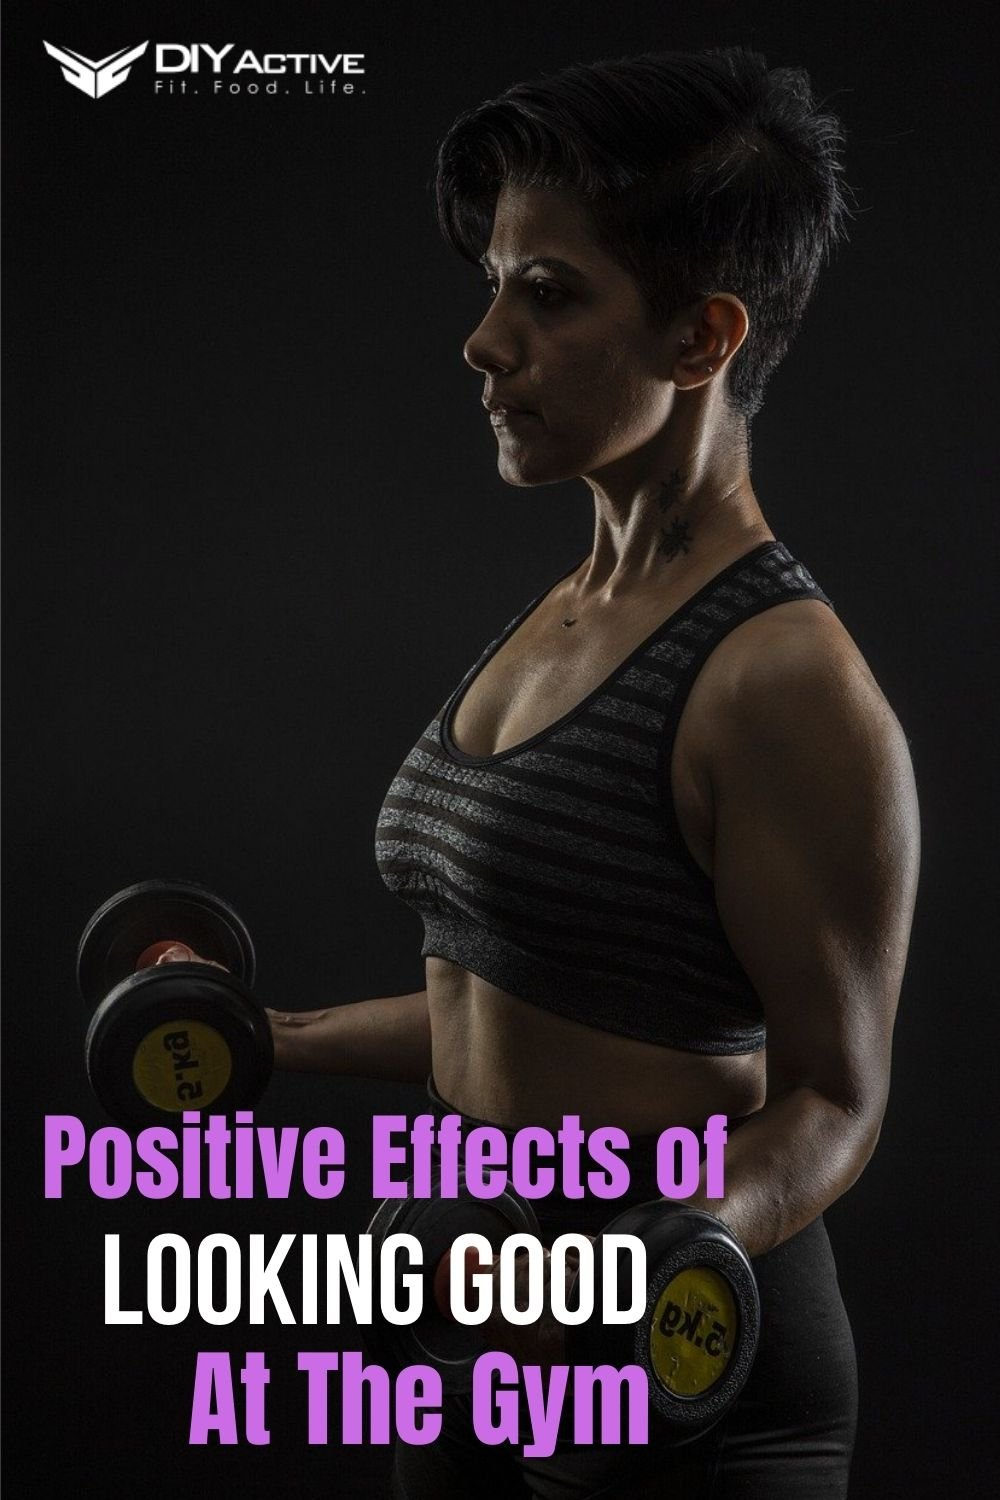 The Positive Effects of Looking Good at the Gym